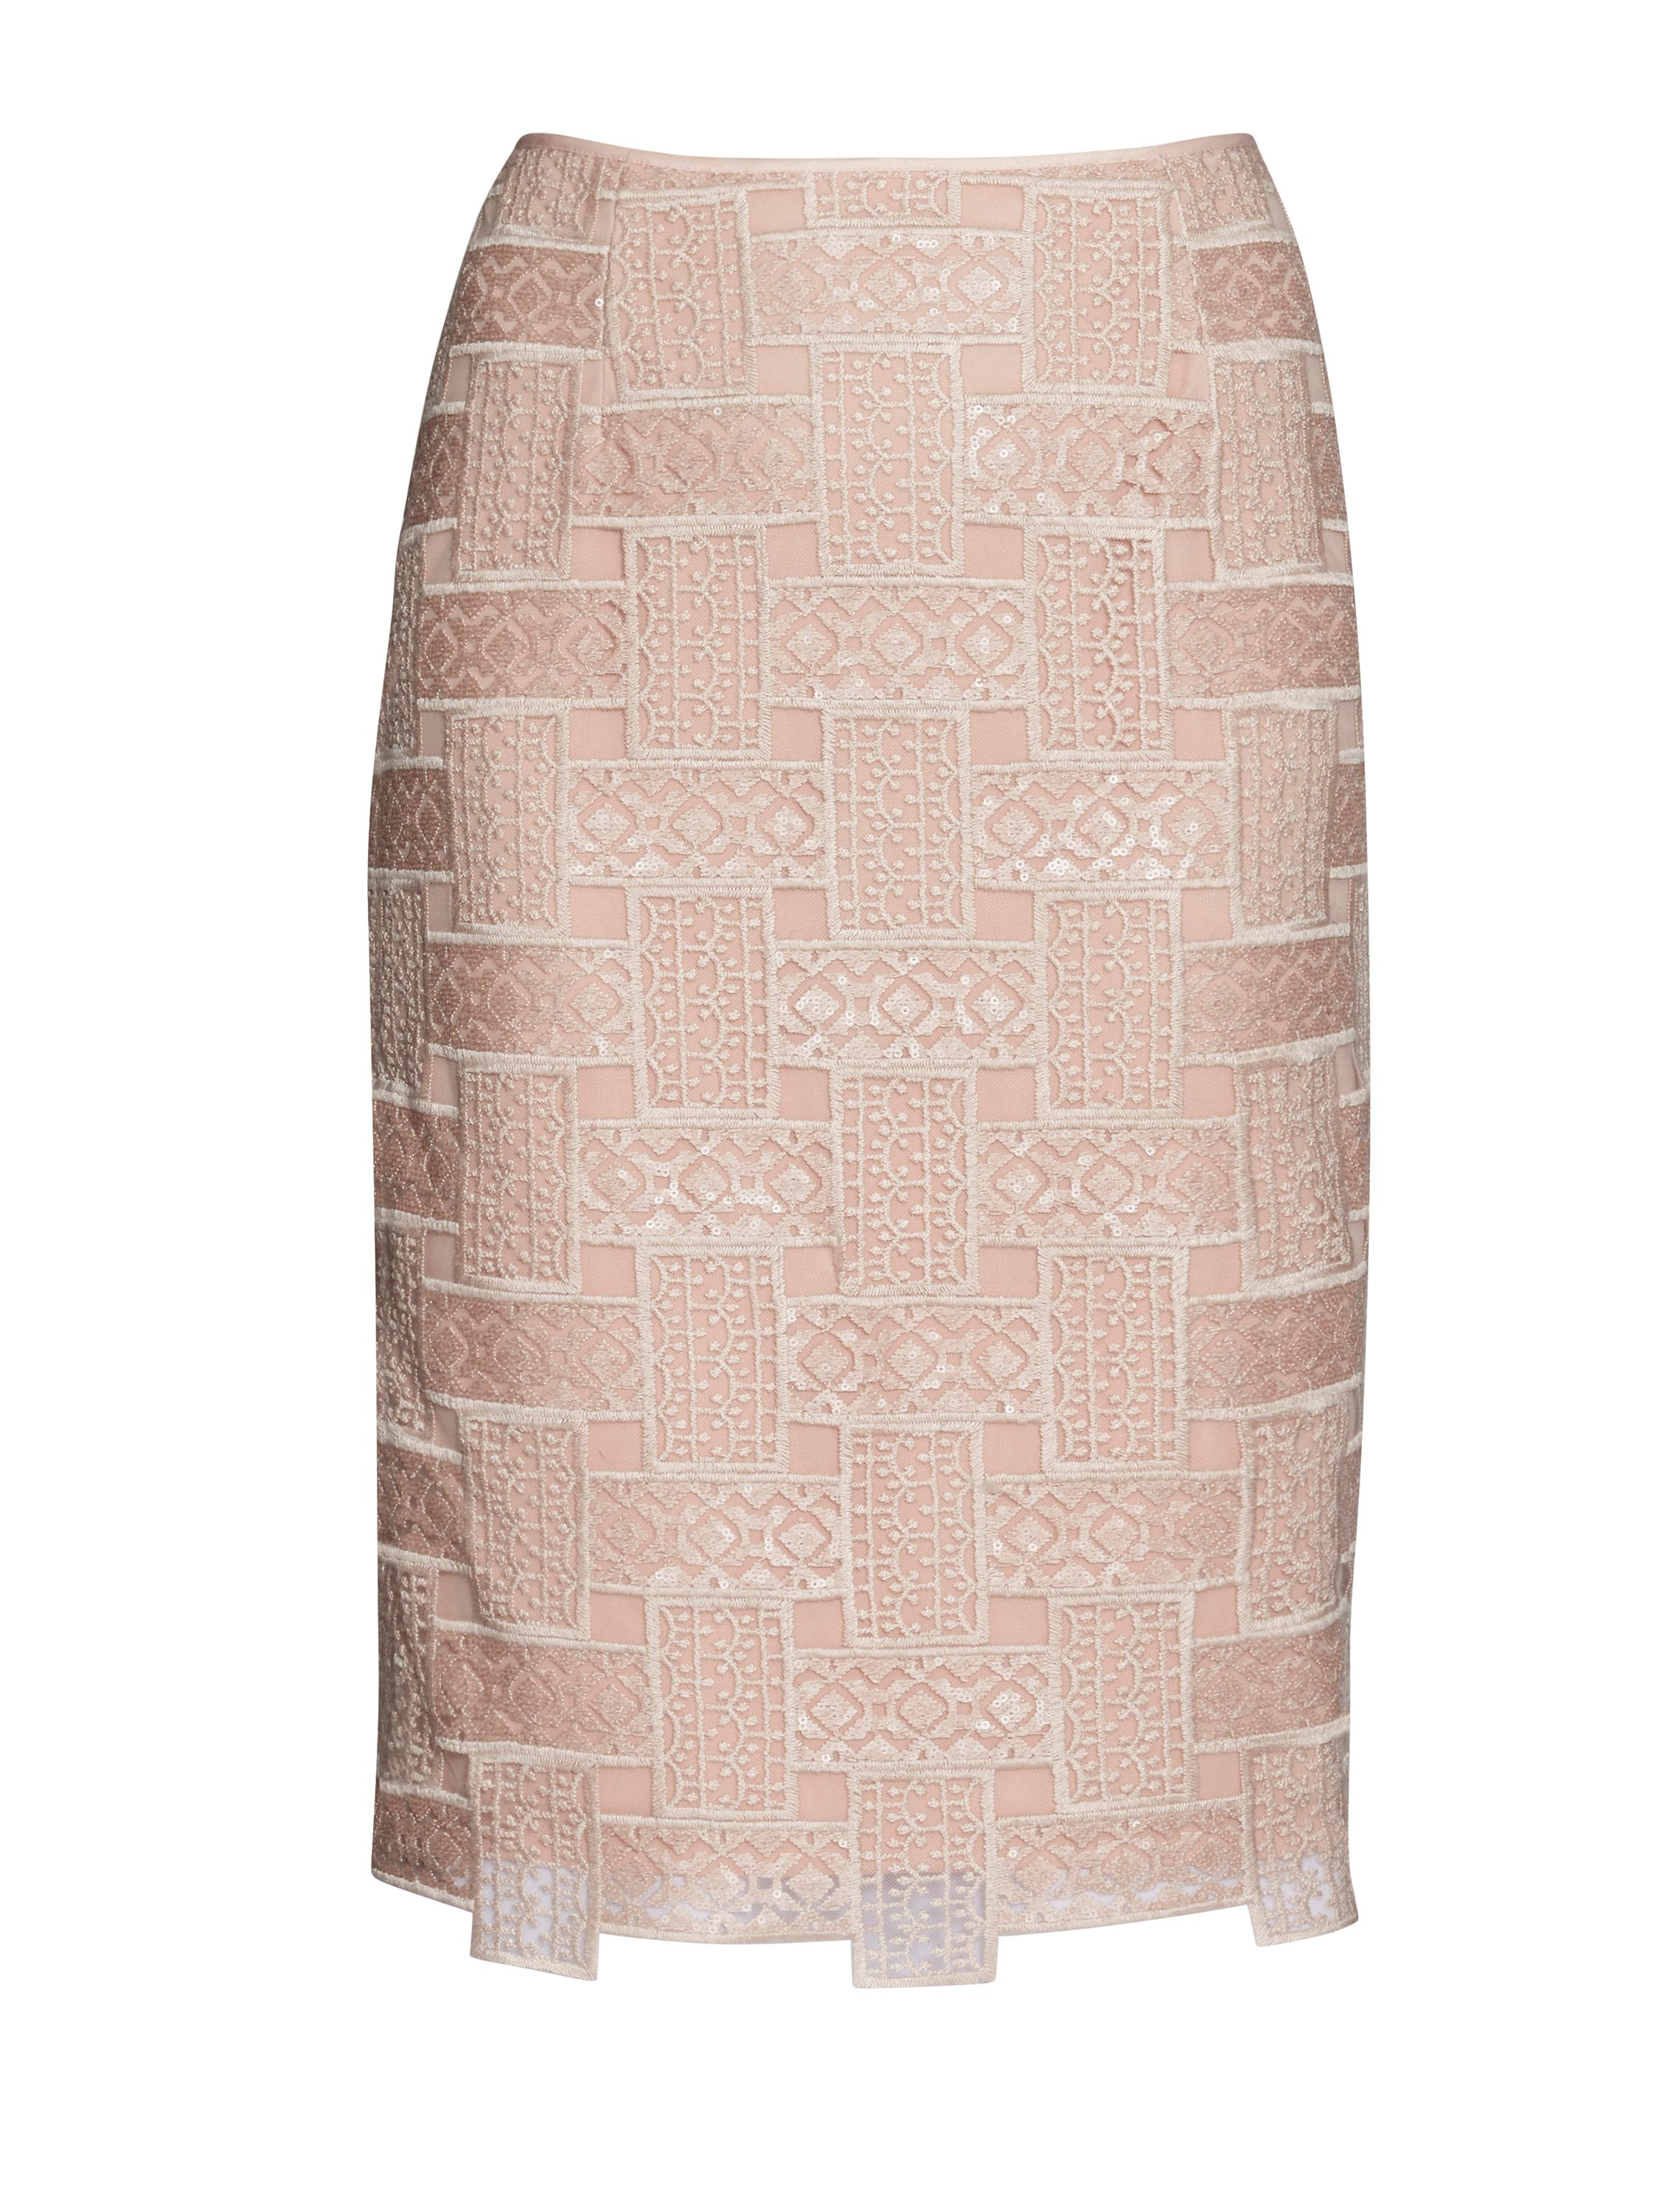 Gina Bacconi Mosaic sequin embroidery skirt, Pink